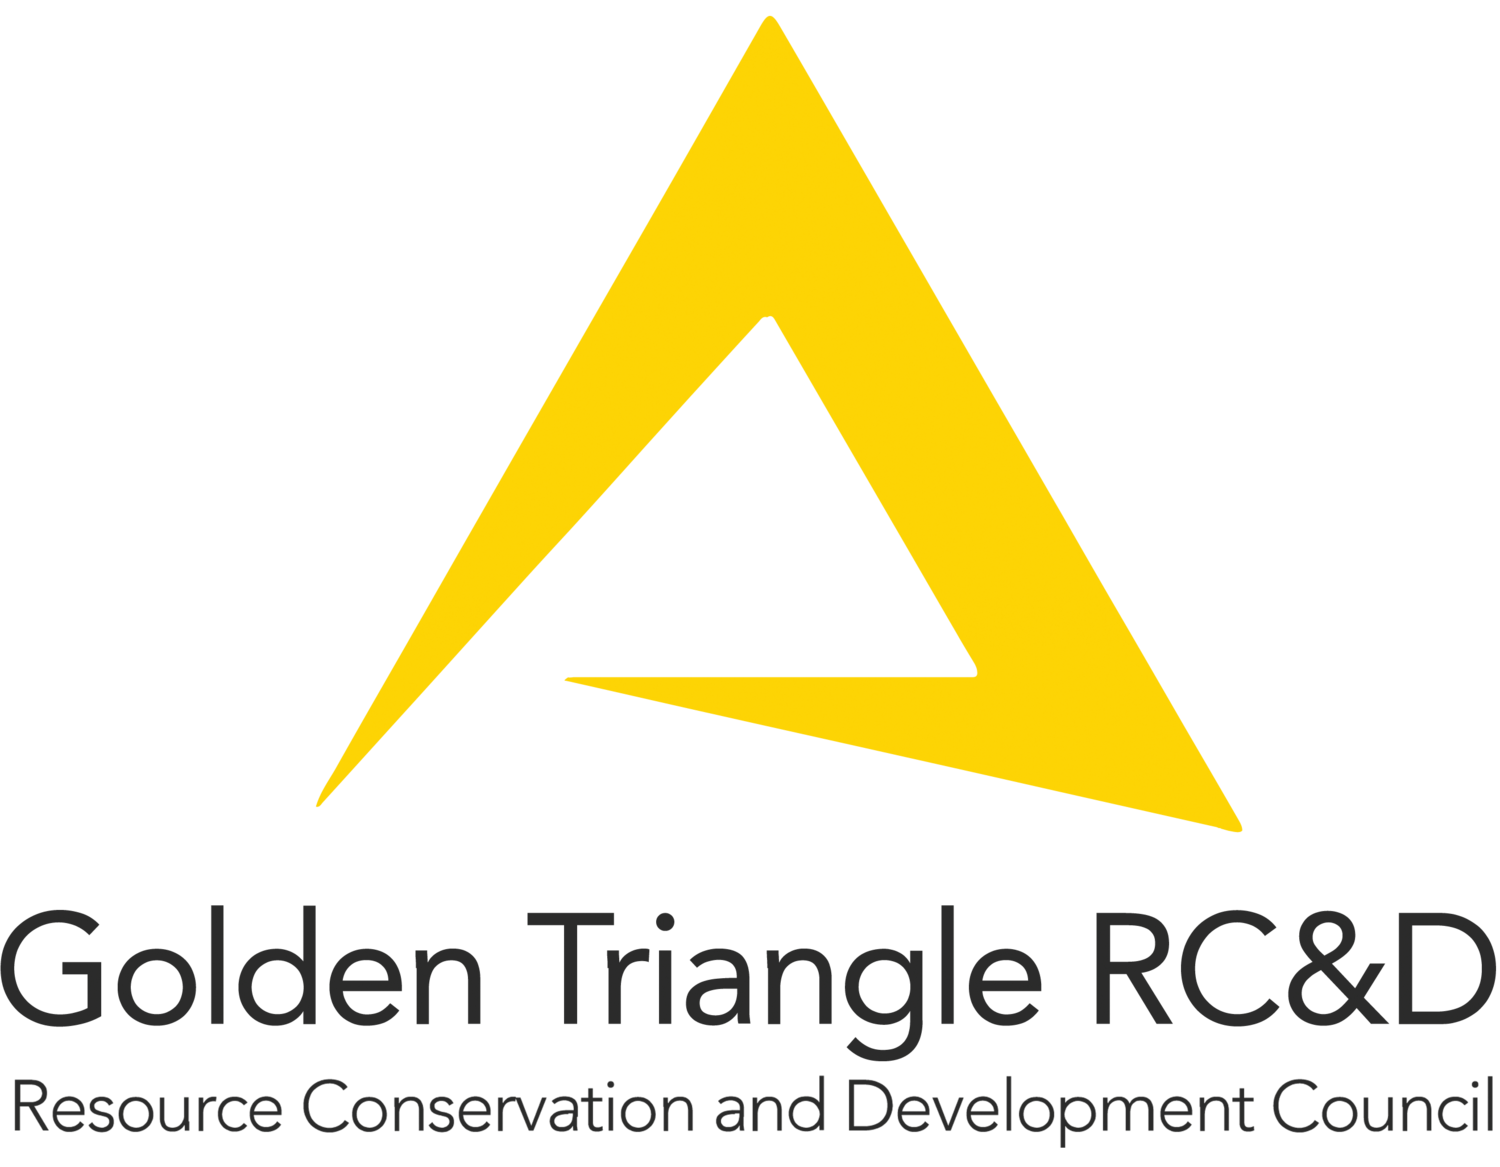 Golden Triangle RC&D